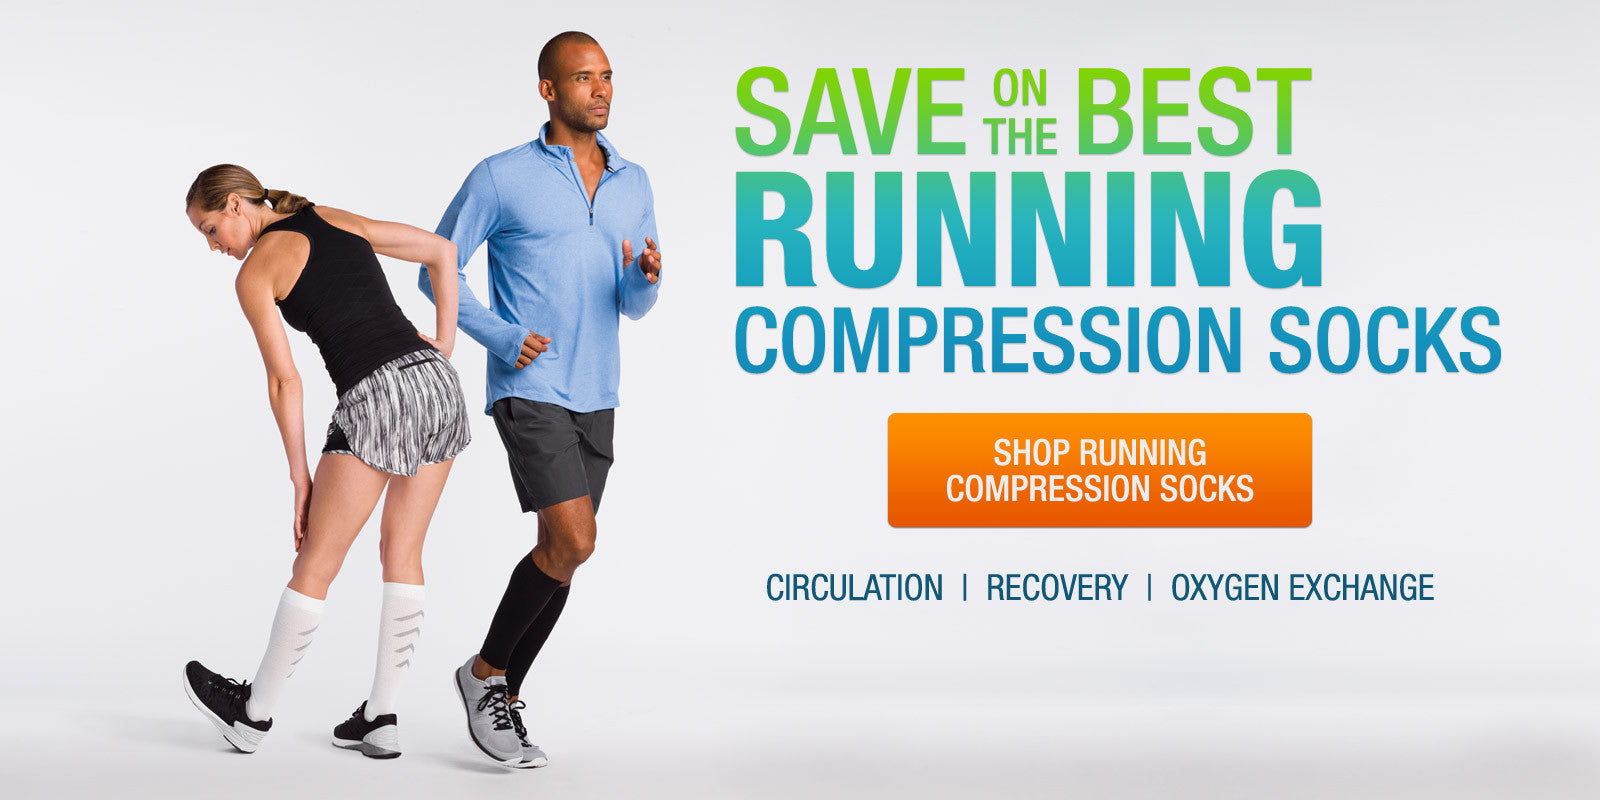 Save on the Best Running Compression Socks